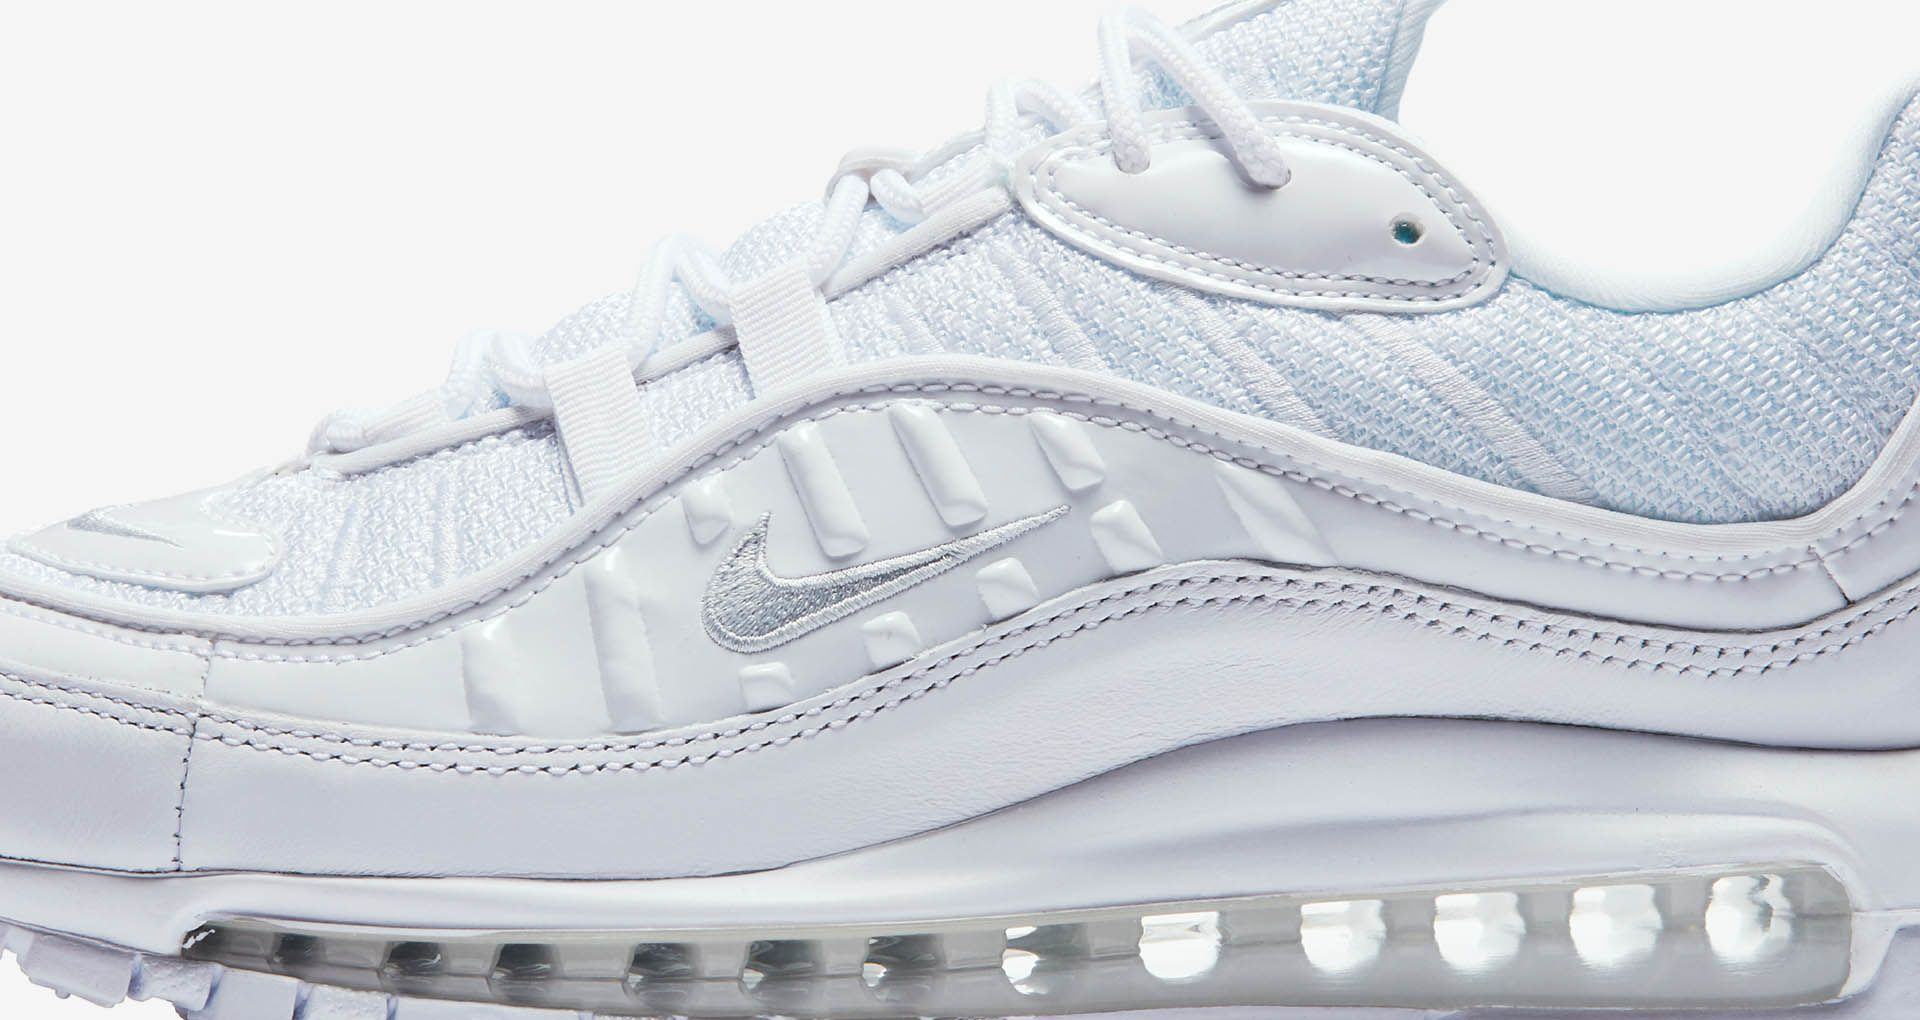 5a82071a35 Nike Air Max 98 'White & Pure Platinum' Release Date. Nike+ SNKRS